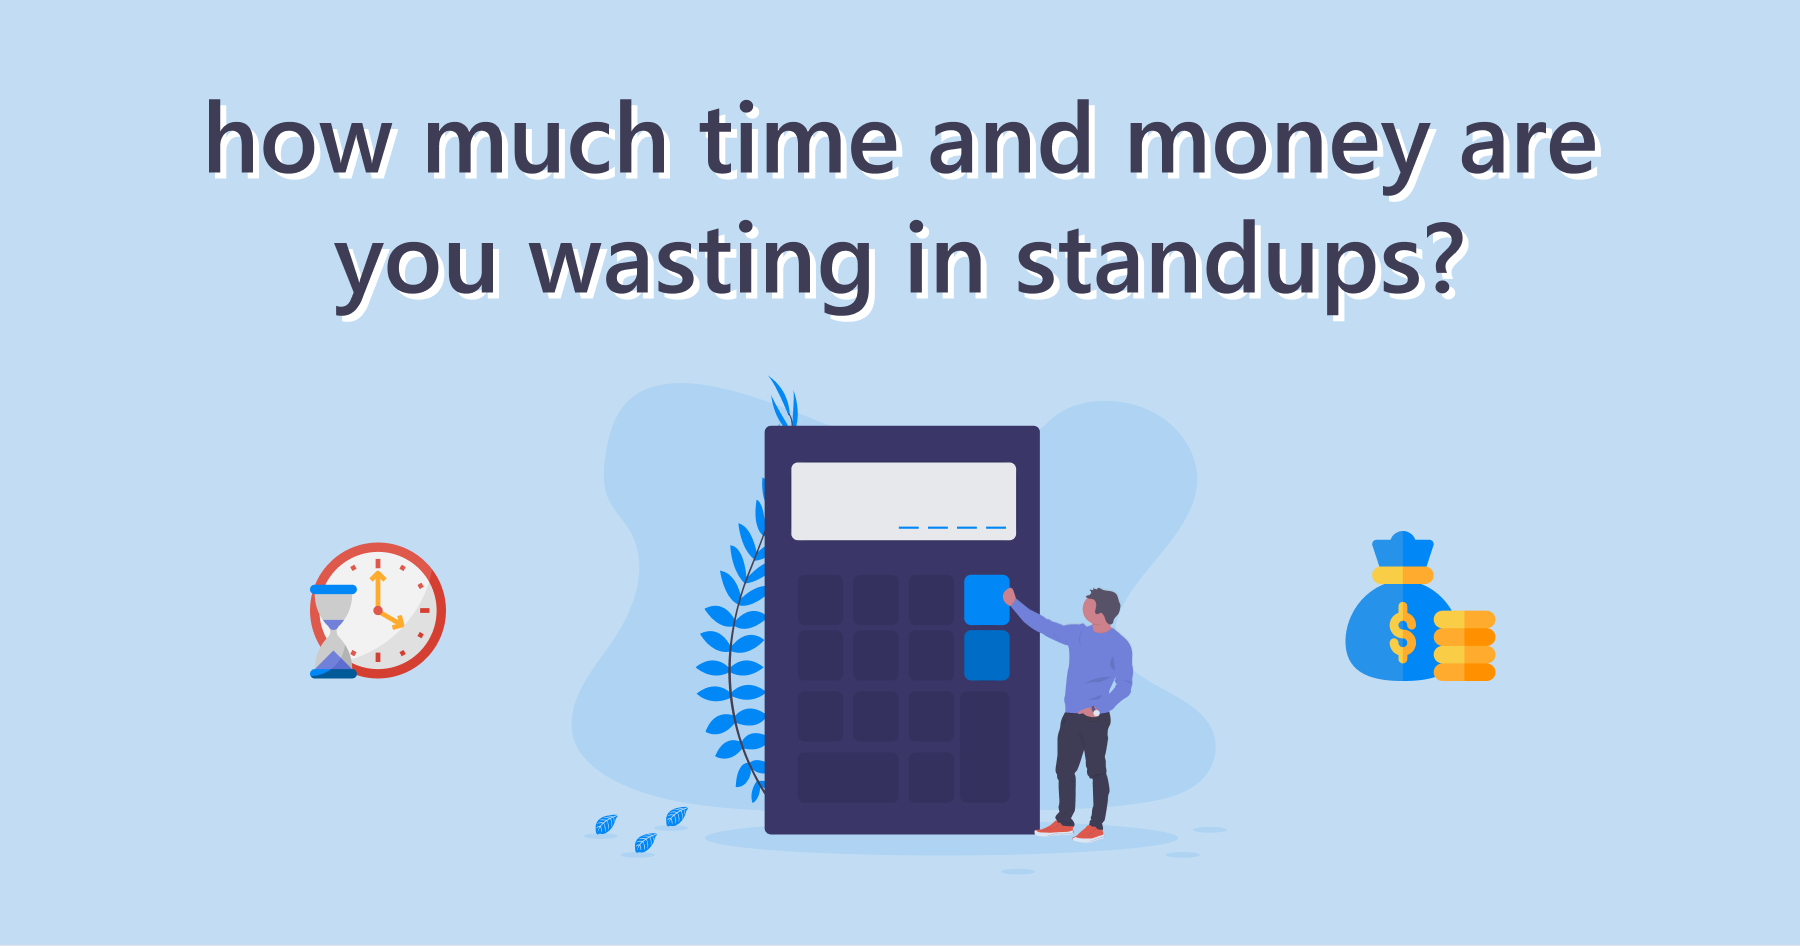 How Much Time and Money Are You Wasting in Standups?